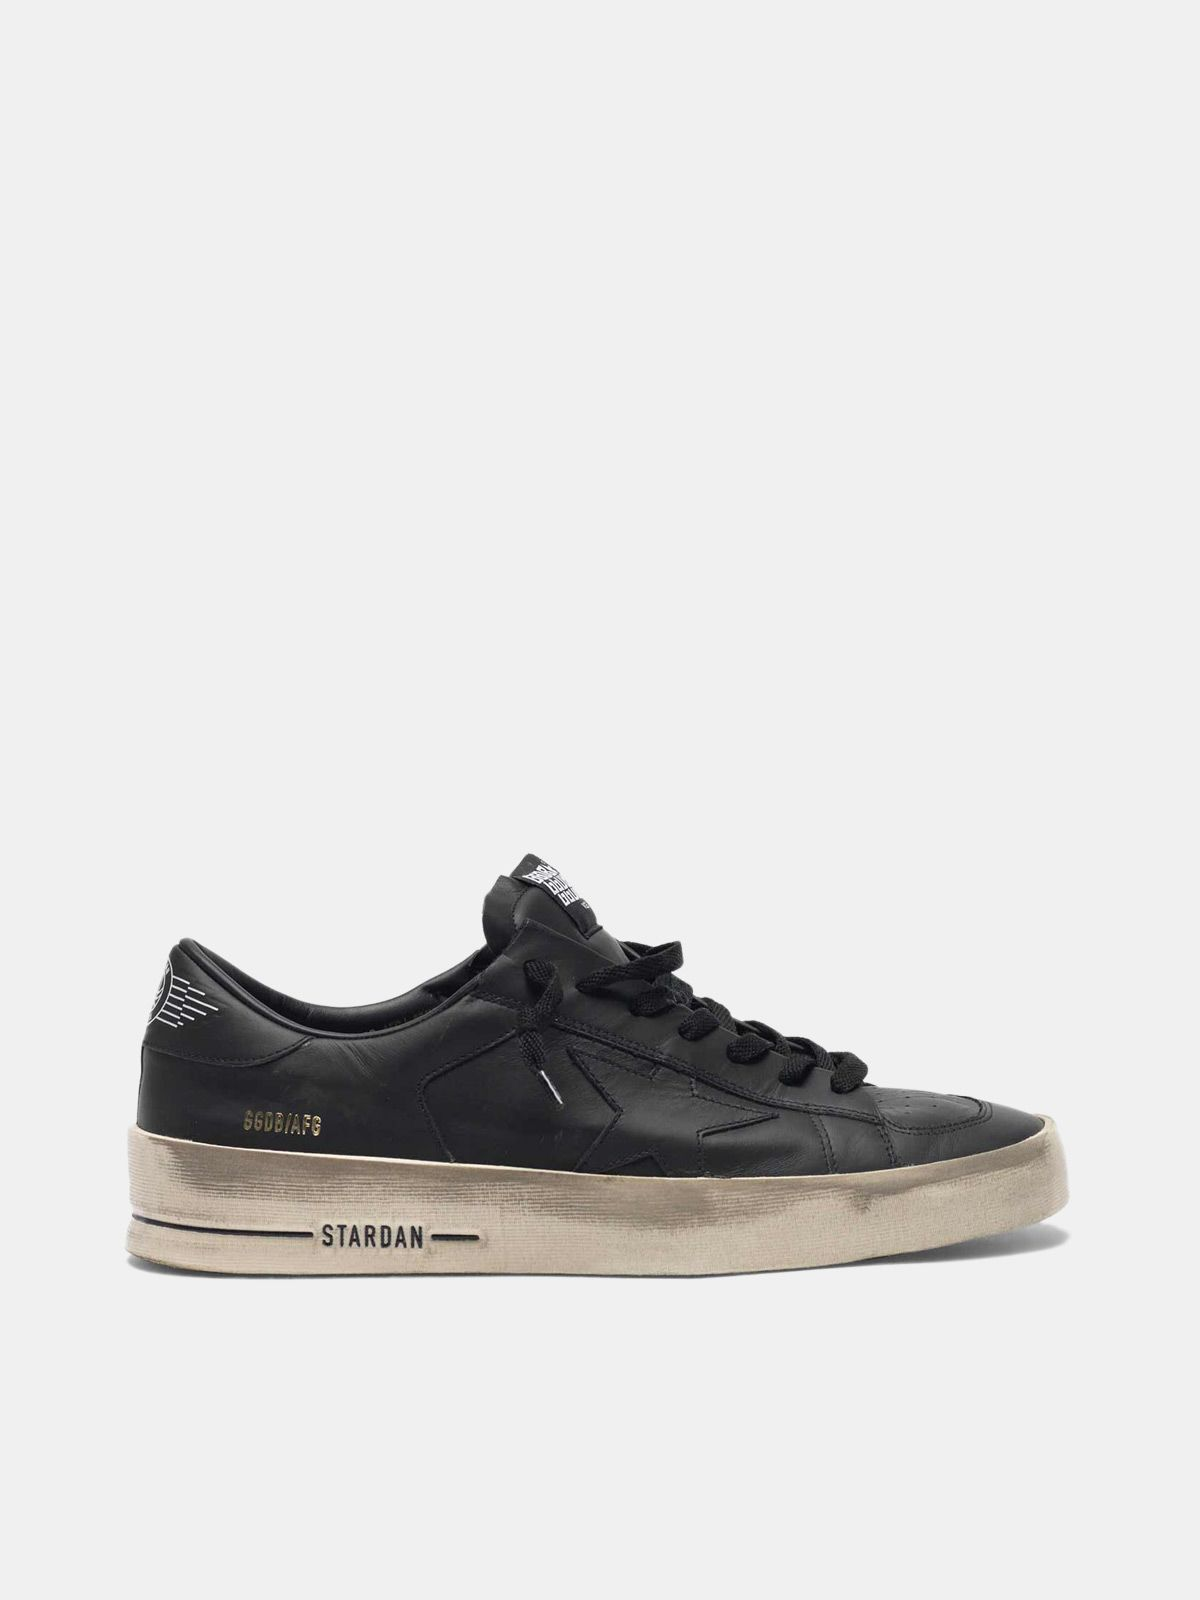 Golden Goose - Stardan sneakers in total black leather with vintage finish in